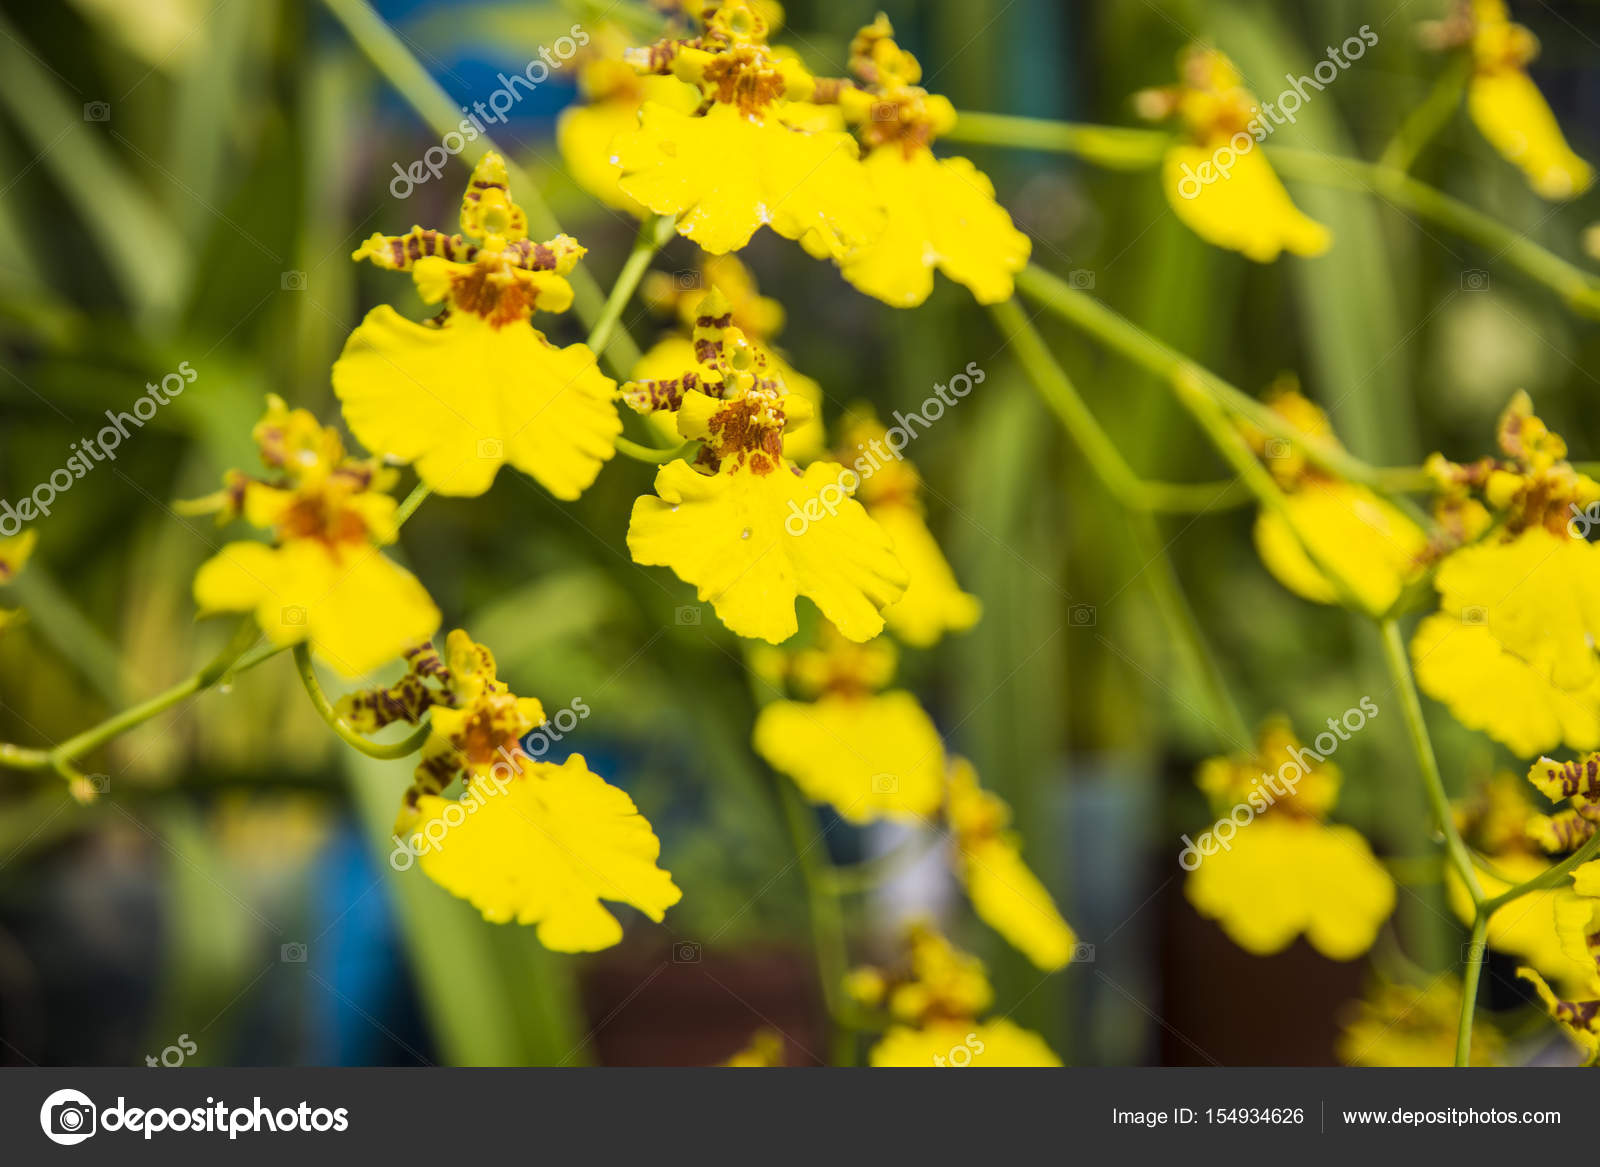 Bright Yellow Flowers Succulent Shrub With Yellow Flowers Stock